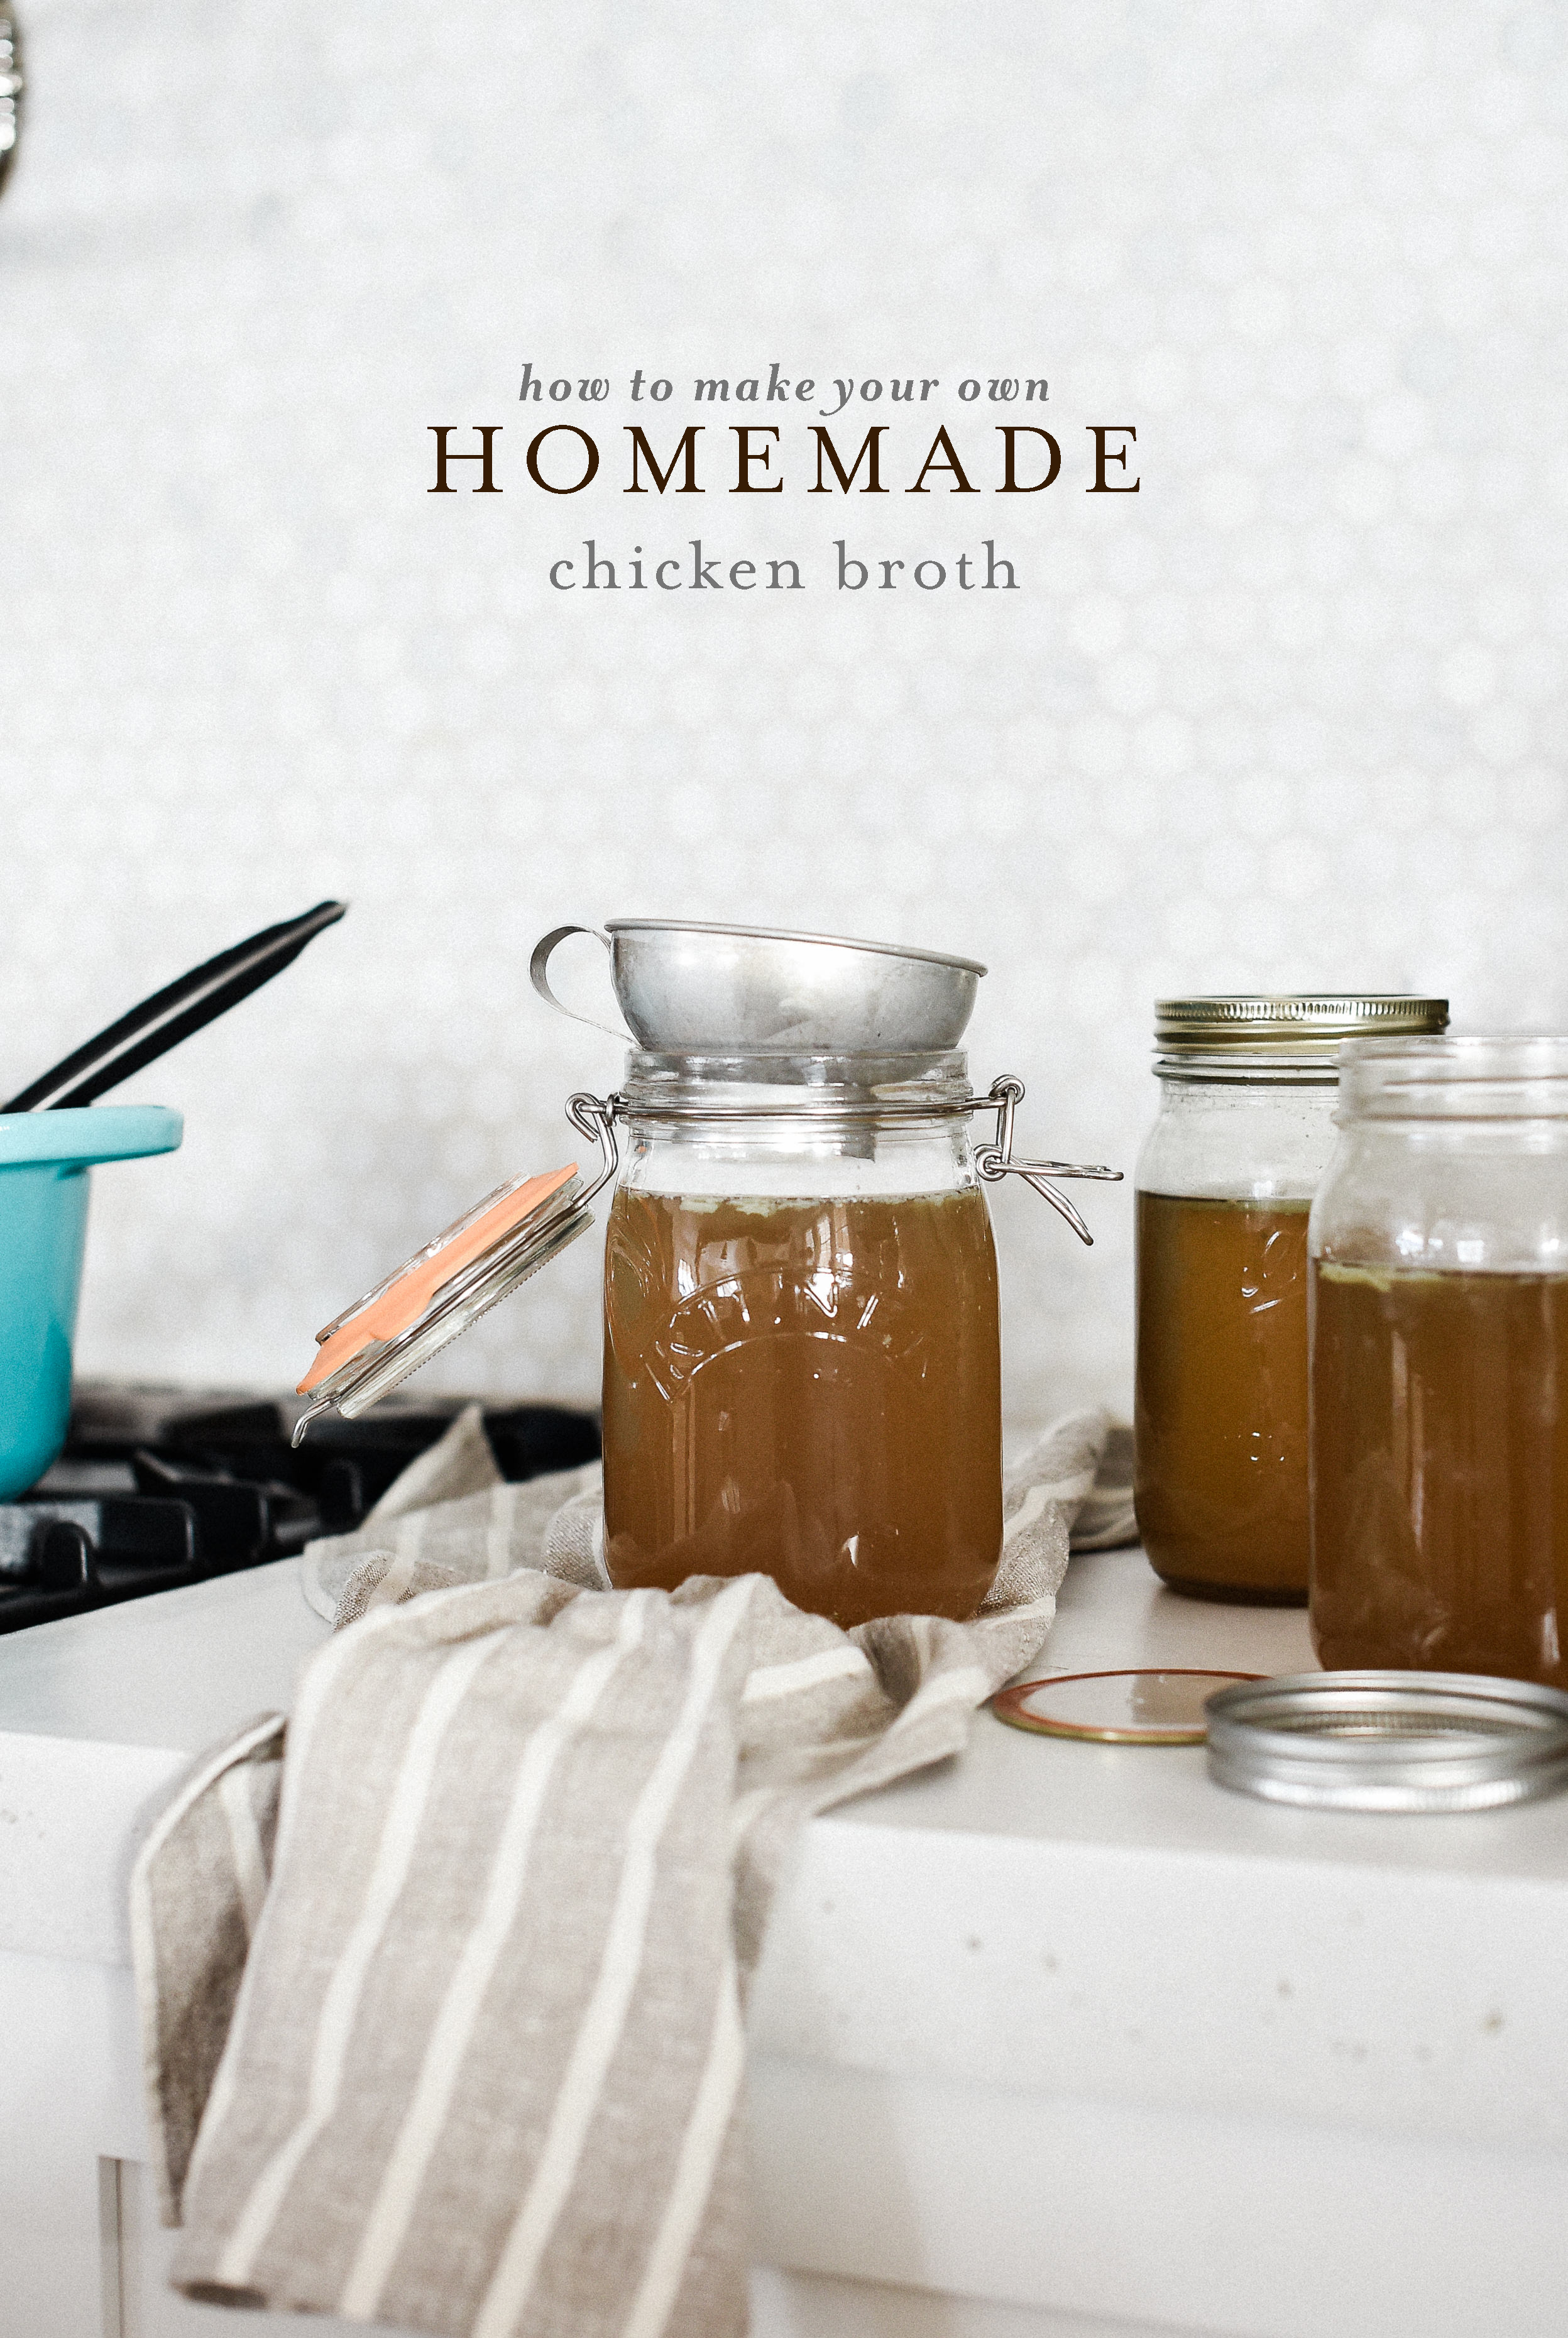 How to make your own homemade chicken broth - easy homemade chicken broth | frugal living and homesteading - freezing in glass jars | #chickenbroth #homesteading #frugalliving